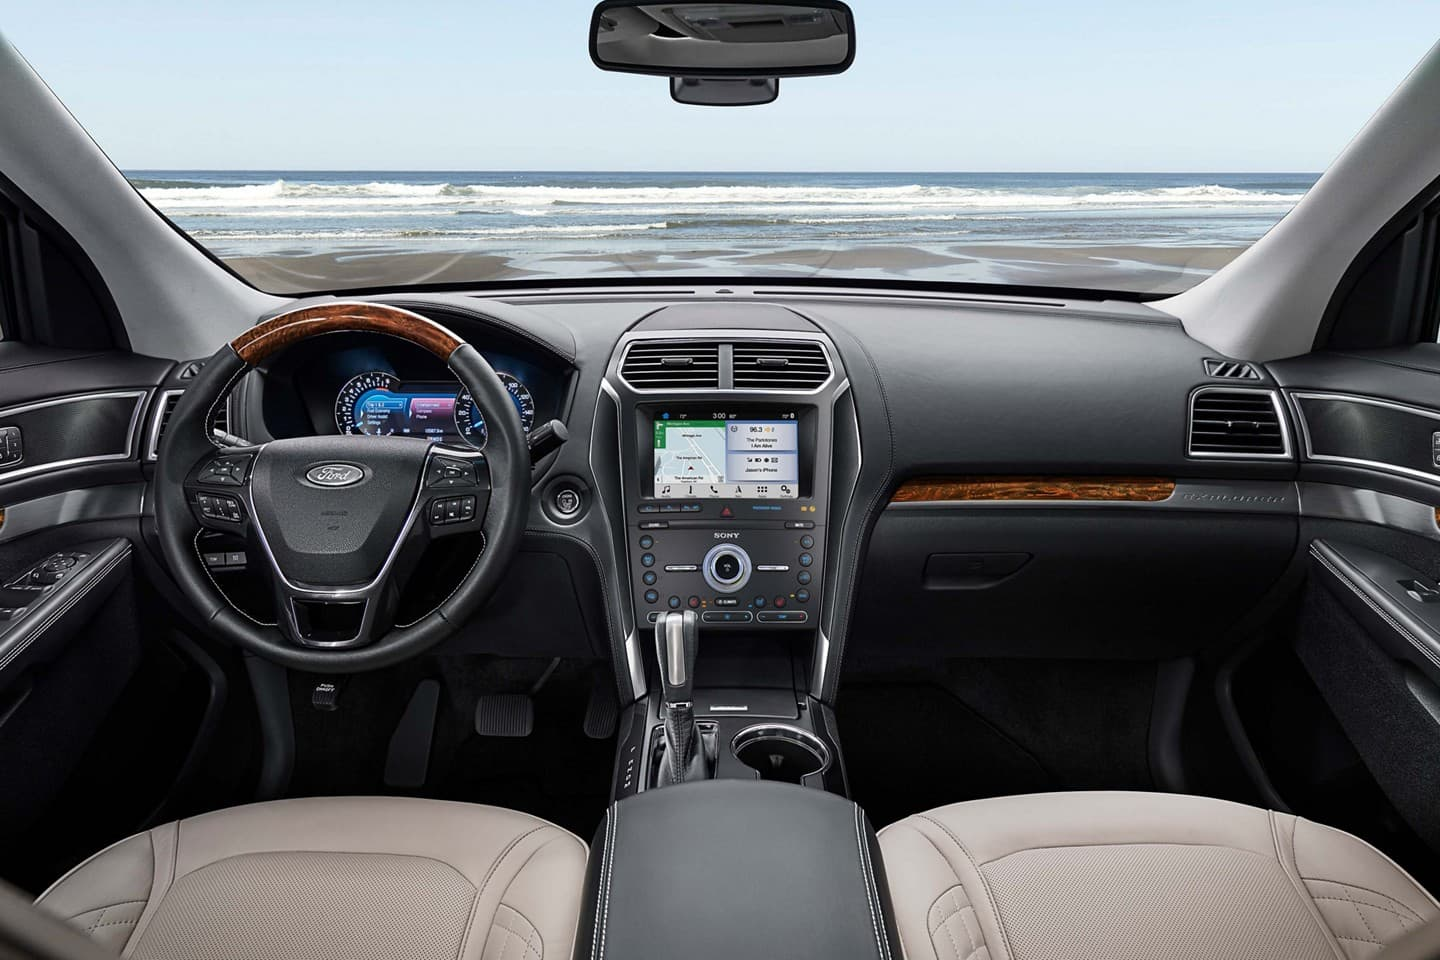 2019 Ford Explorer Cockpit